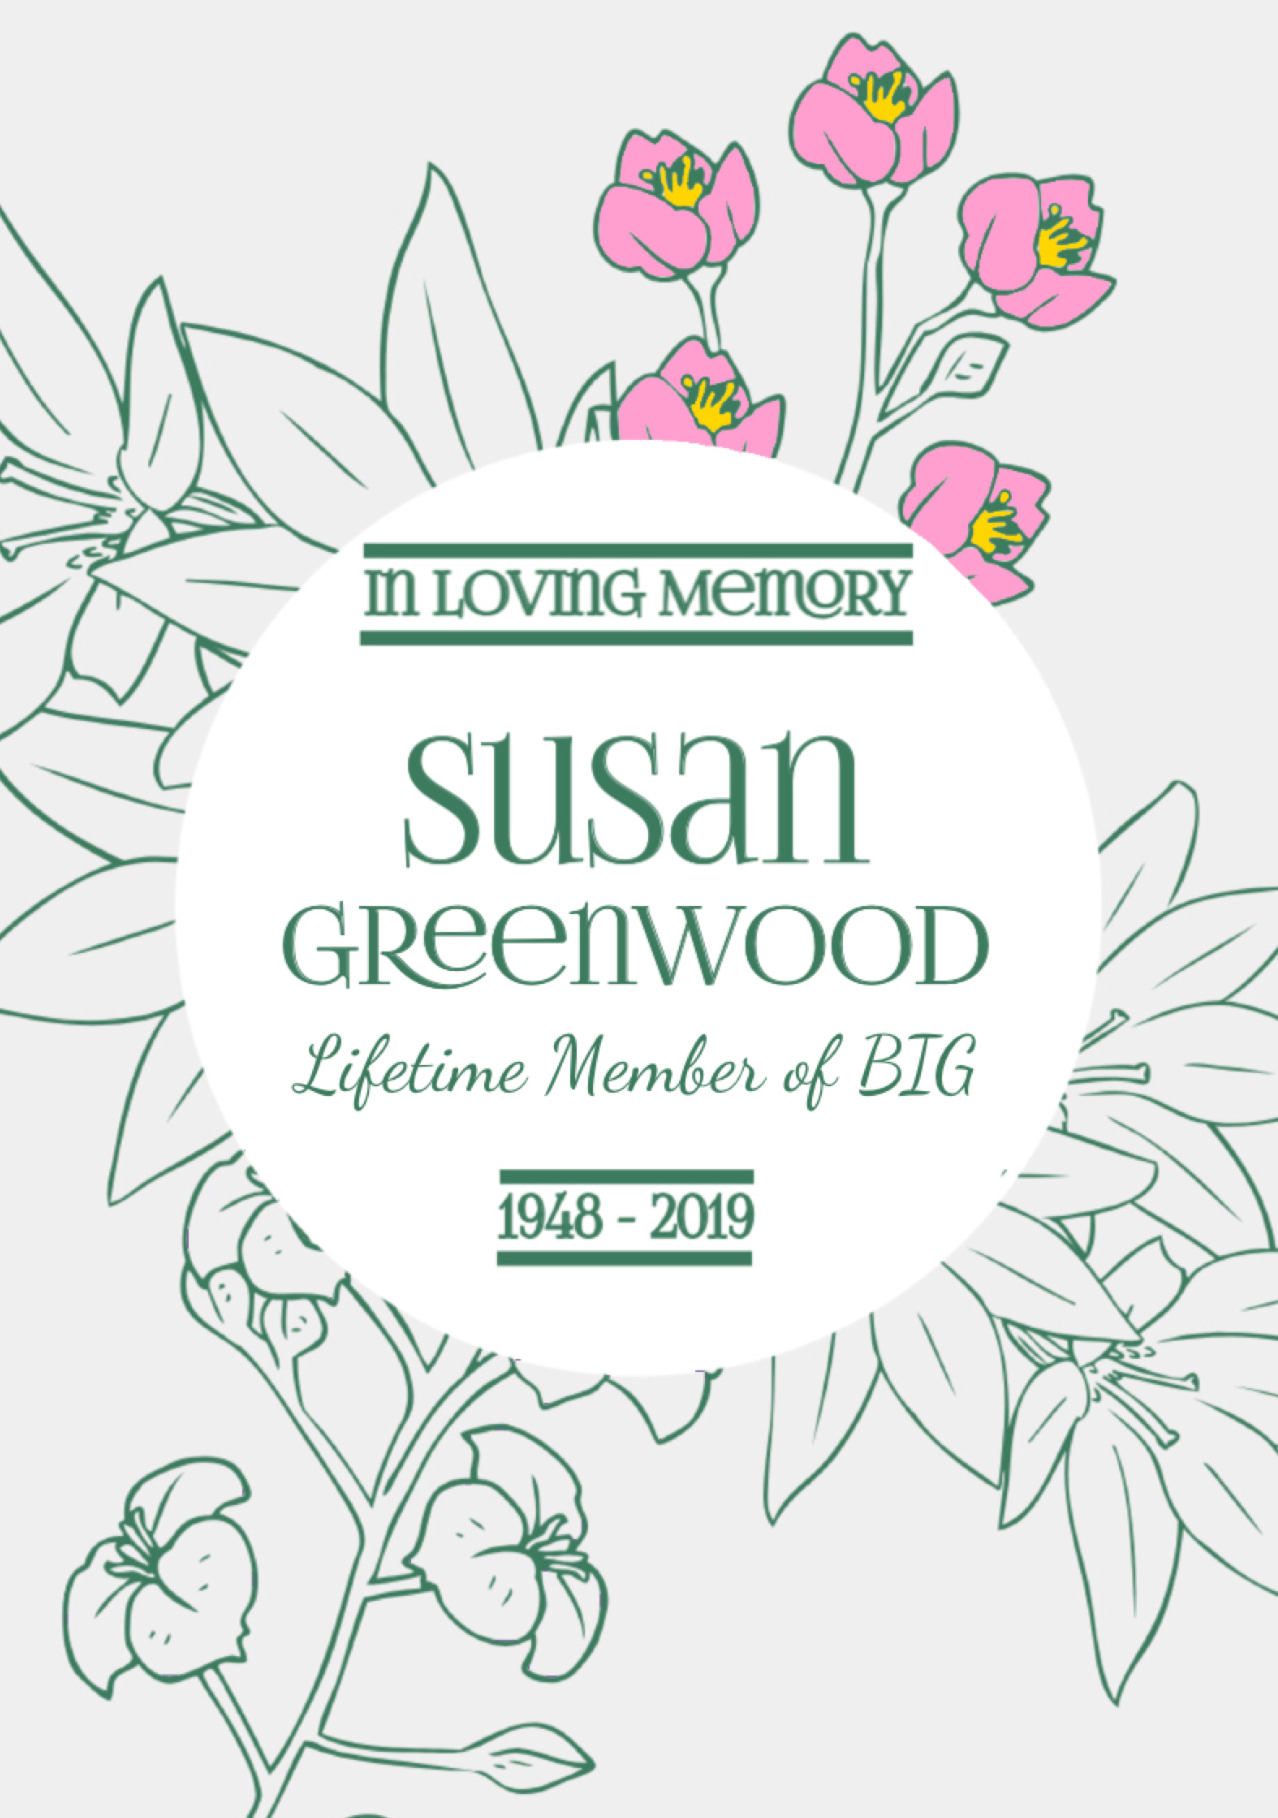 In Loving Memory of Susan Greenwood (1948-2019) Lifetime Member of BIG